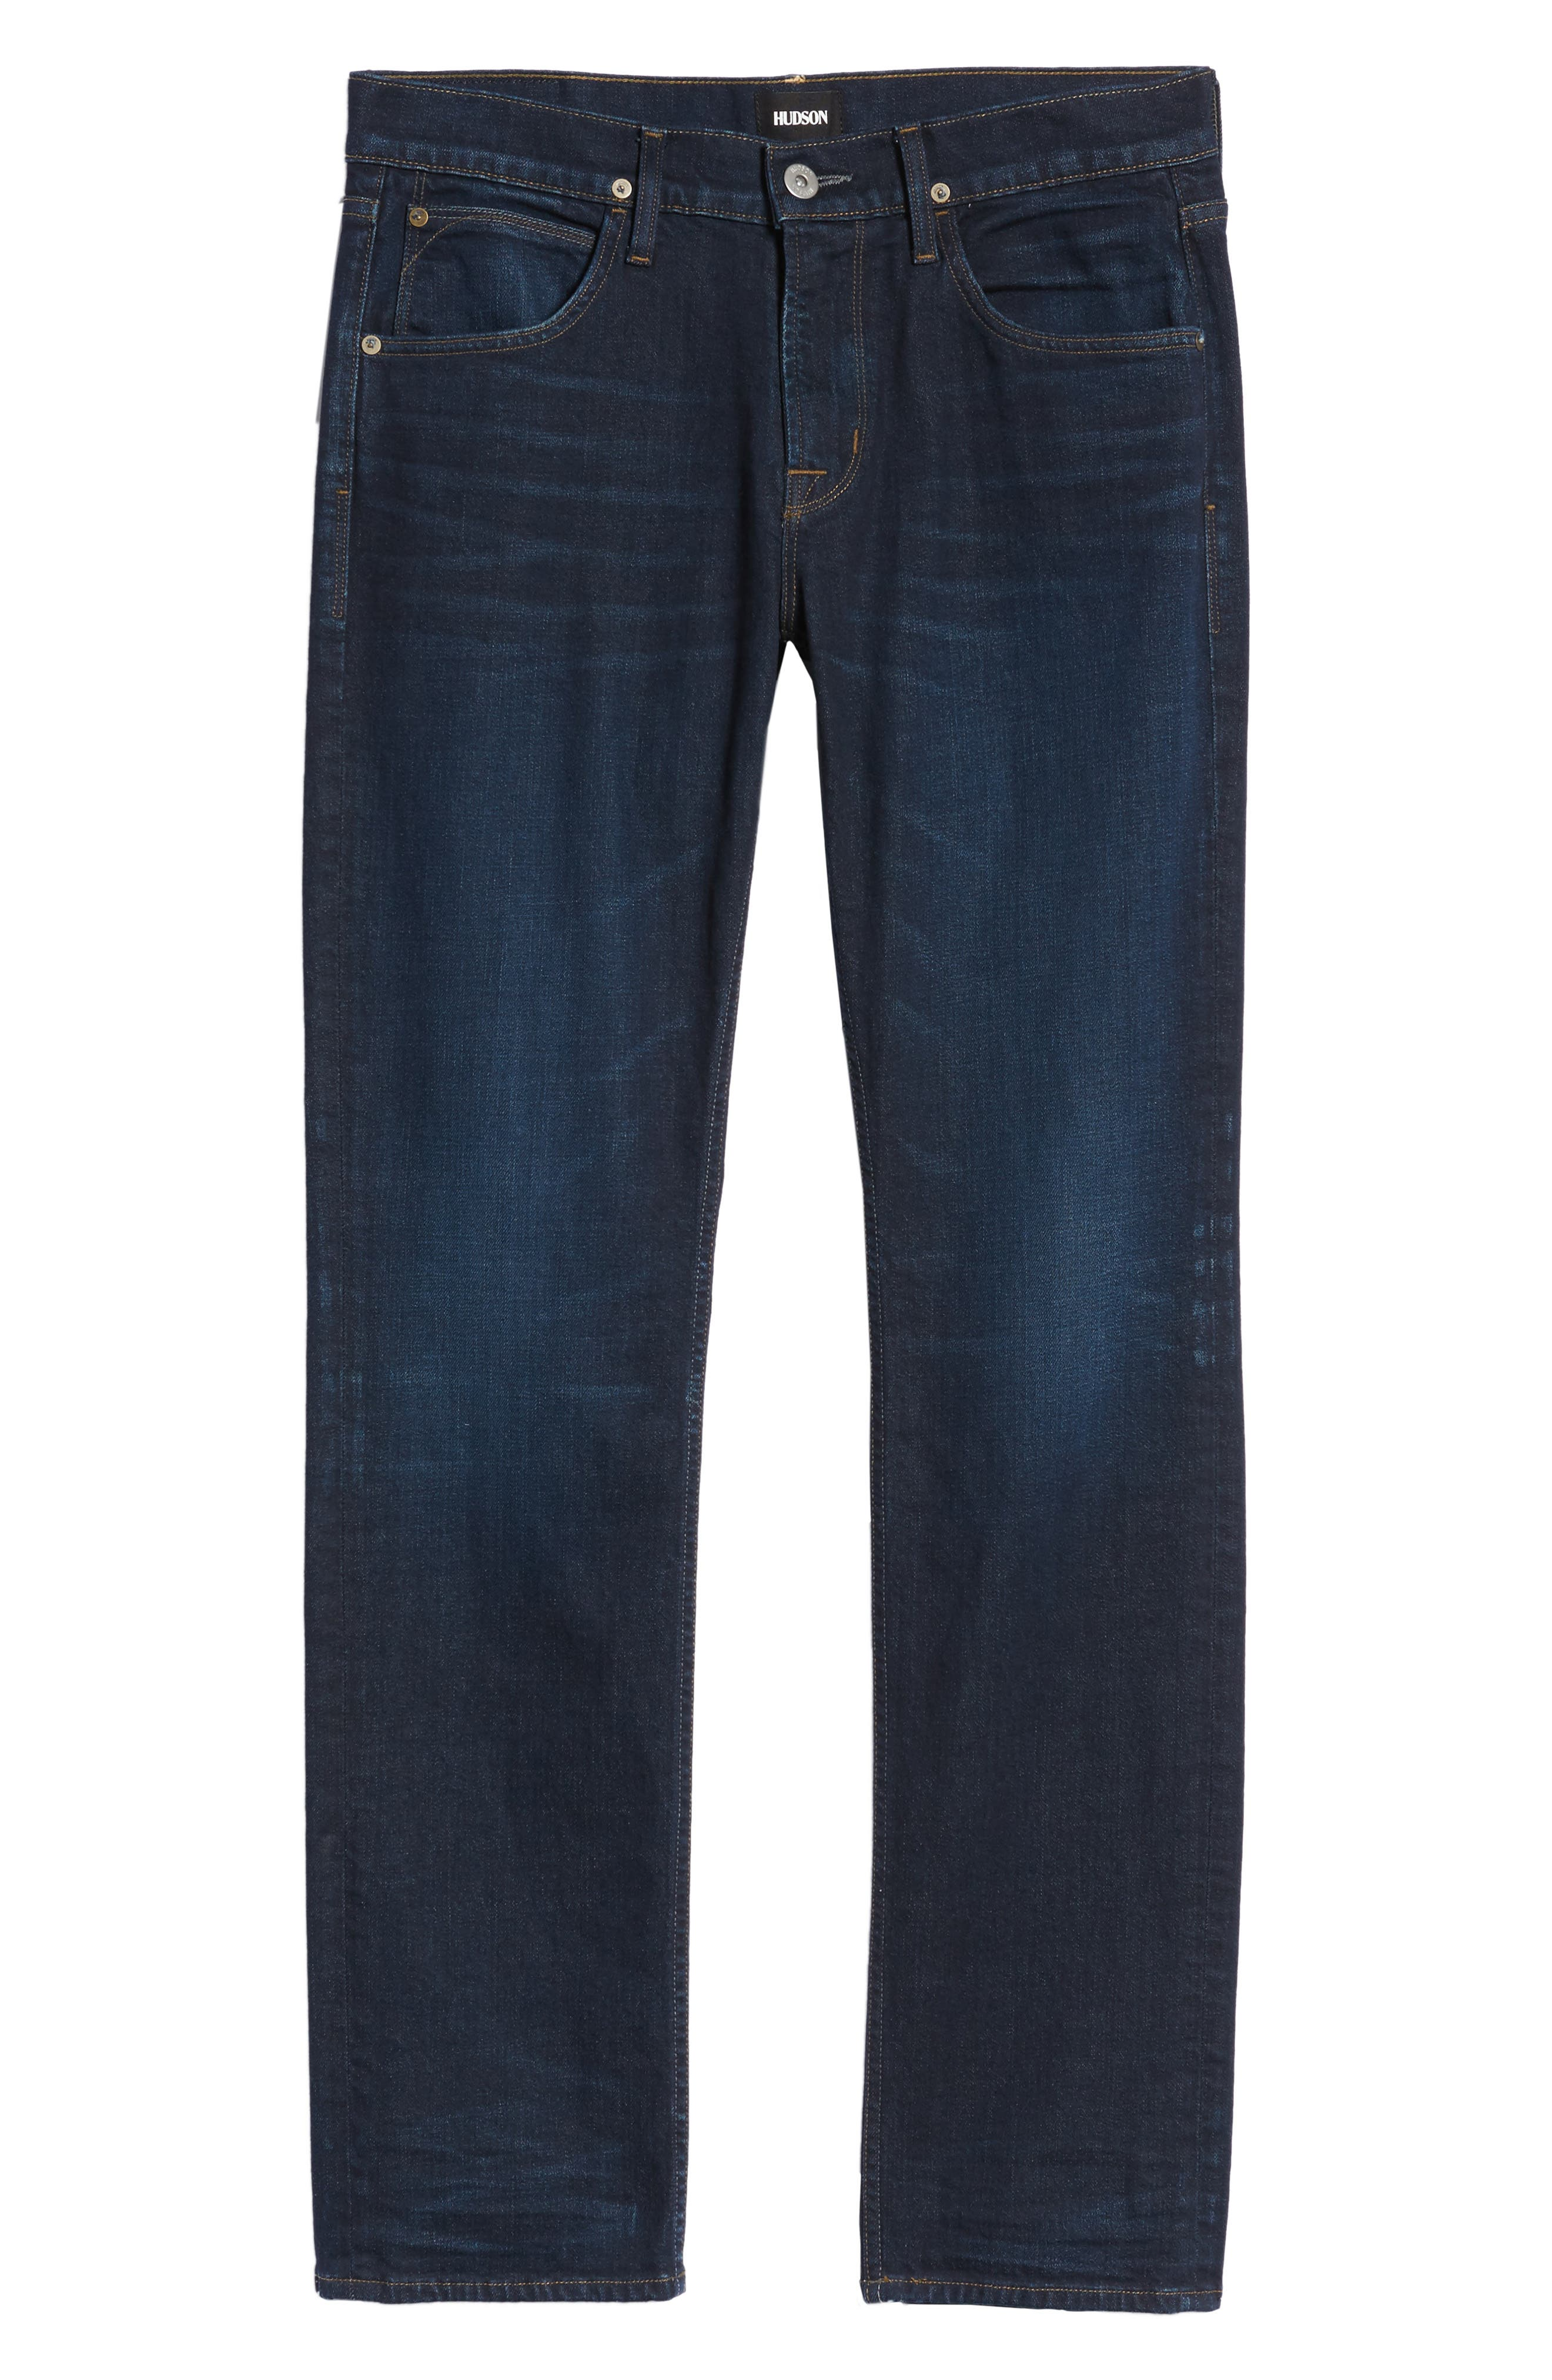 Byron Slim Straight Fit Jeans,                             Alternate thumbnail 6, color,                             Session